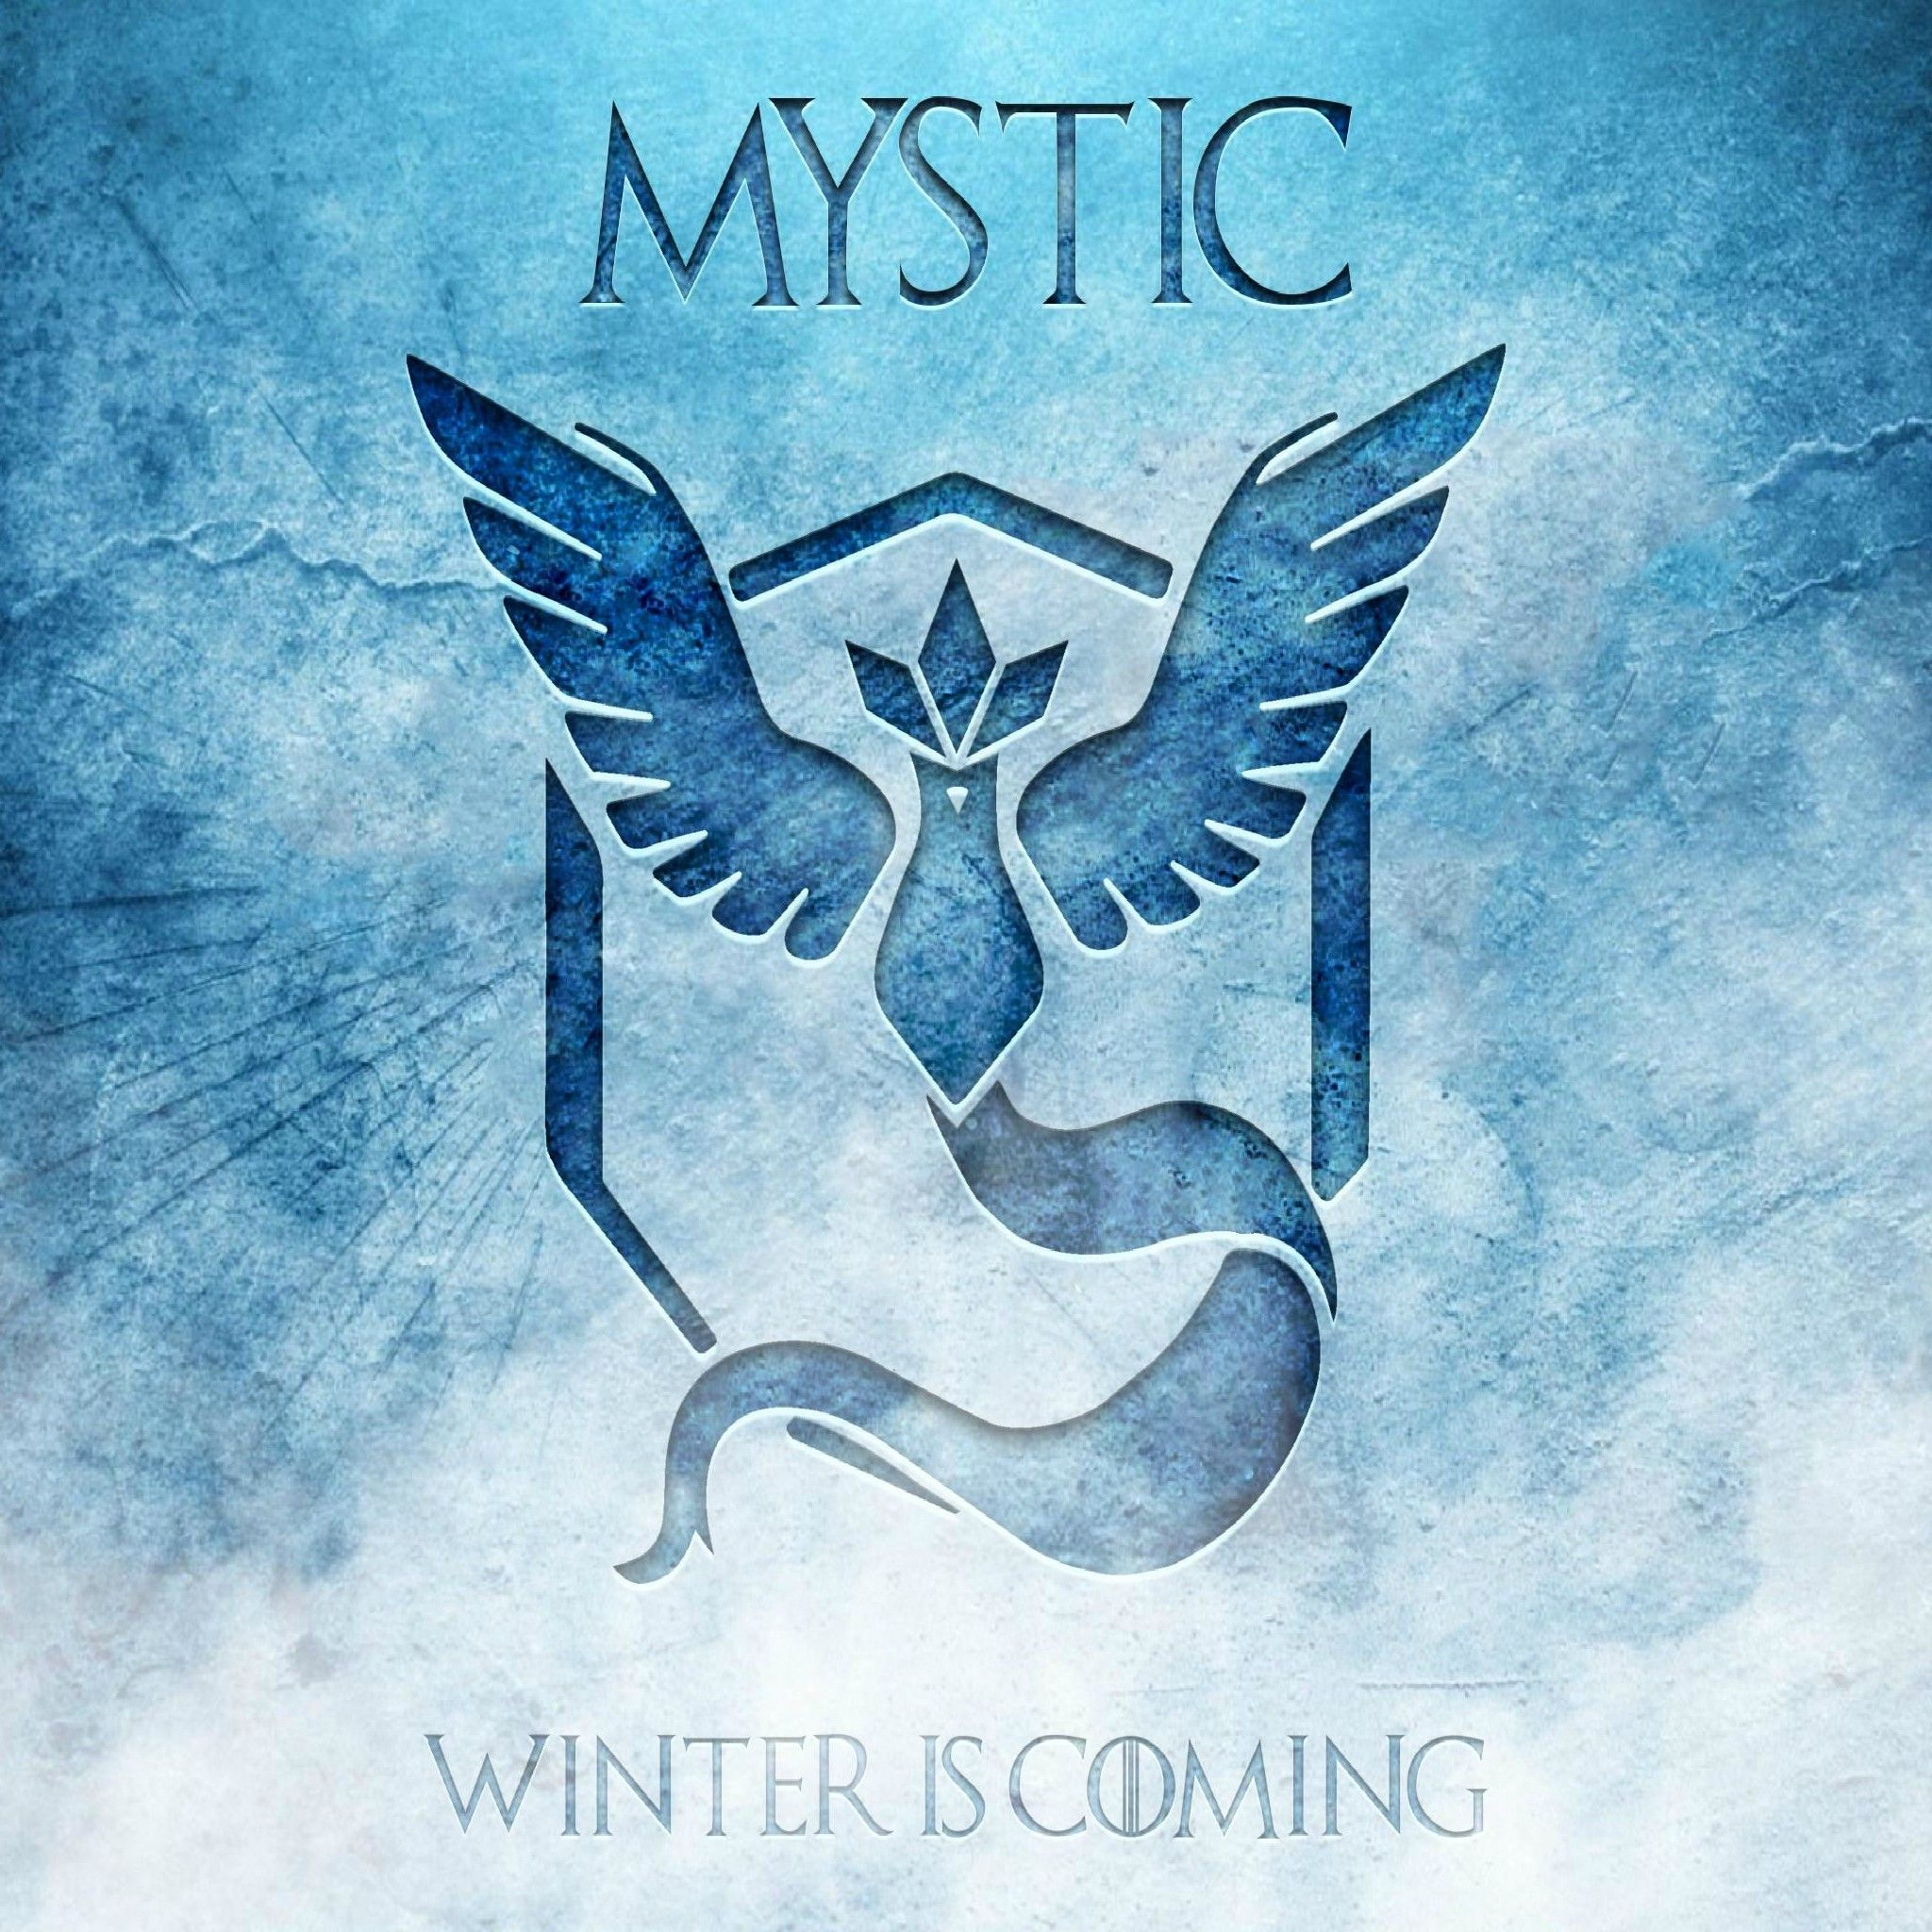 Mystic Winter Is Coming  Tap To See More Cool